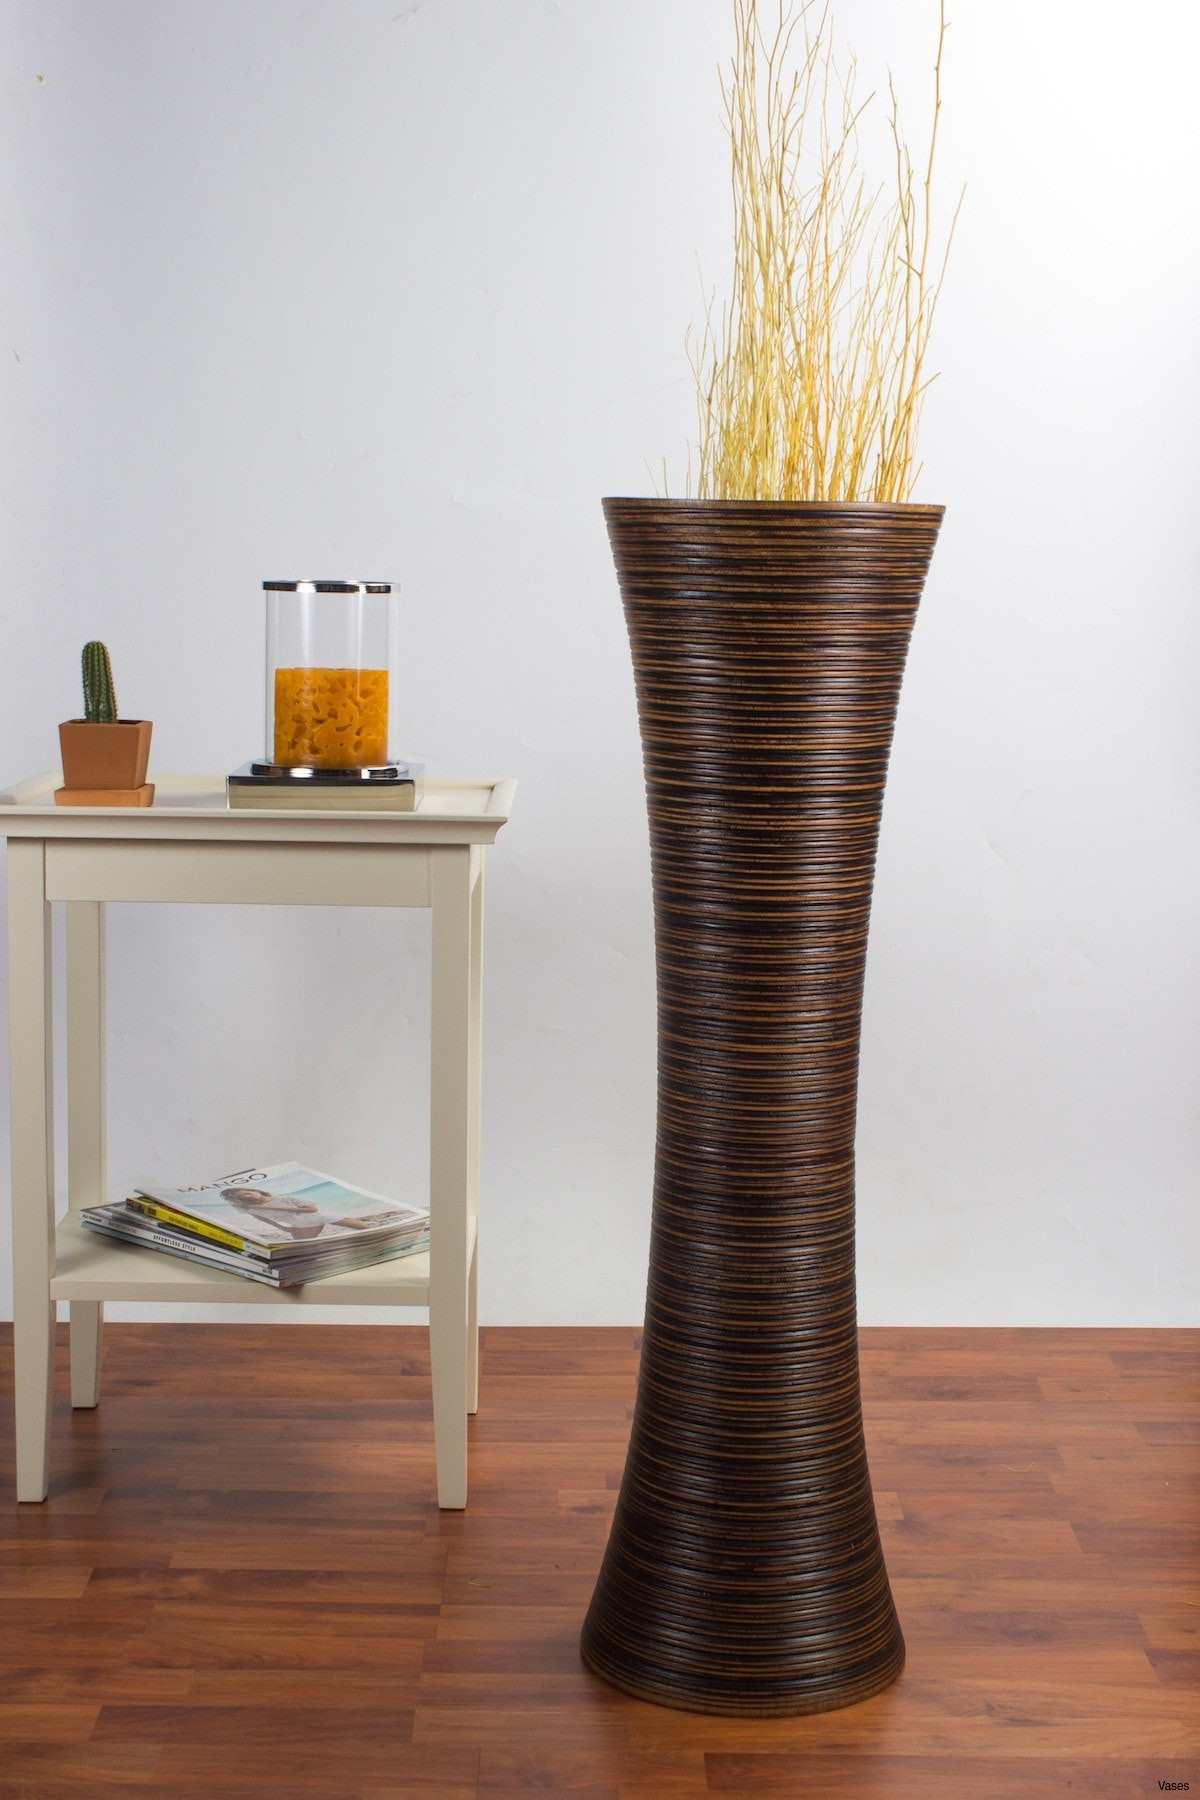 Wooden Floor Vases Contemporary Of Tall Floor Vase Collection H Vases Tall Floor I 0d Over 32 Inches Pertaining to Tall Floor Vase Collection Decorative Floor Vases Fresh D Dkbrw 5749 1h Vases Tall Brown I